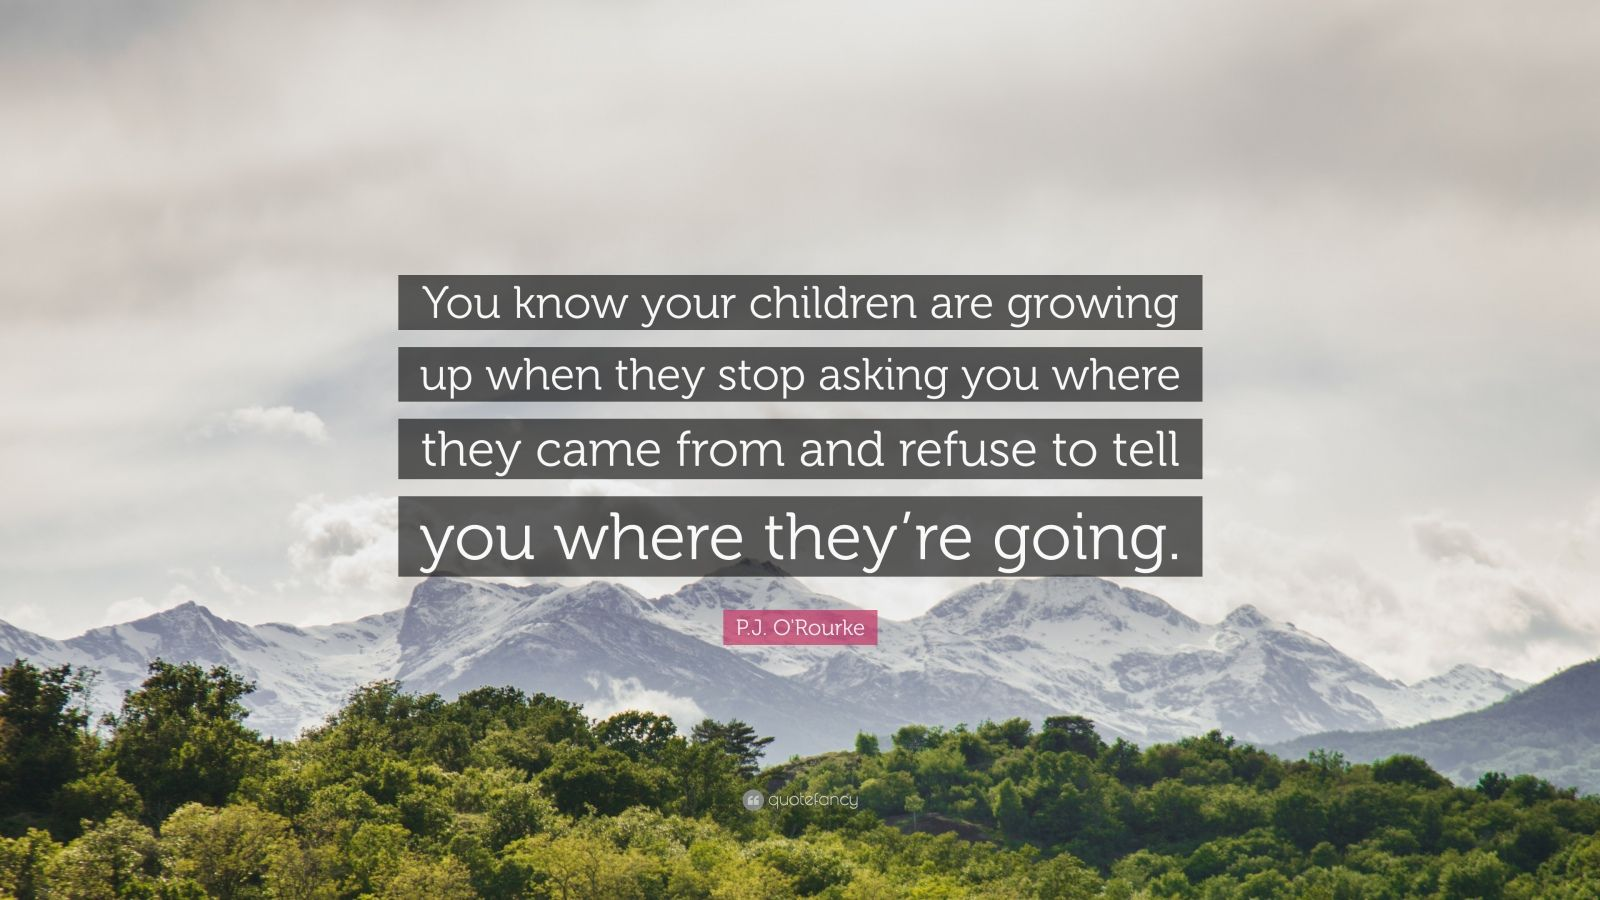 """P.J. O'Rourke Quote: """"You know your children are growing up when they stop asking you where they came from and refuse to tell you where they're going."""""""